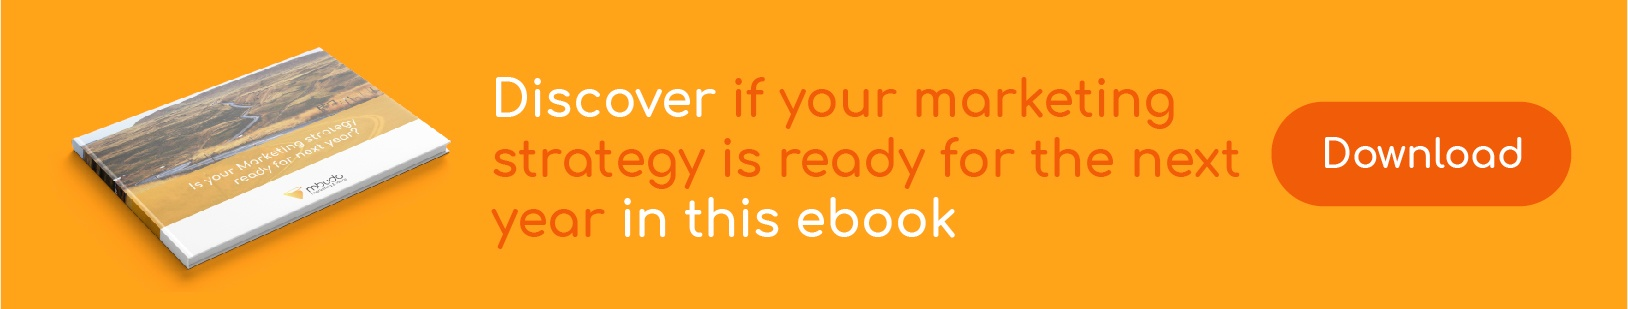 is your marketing strategy ready 2020 ebook